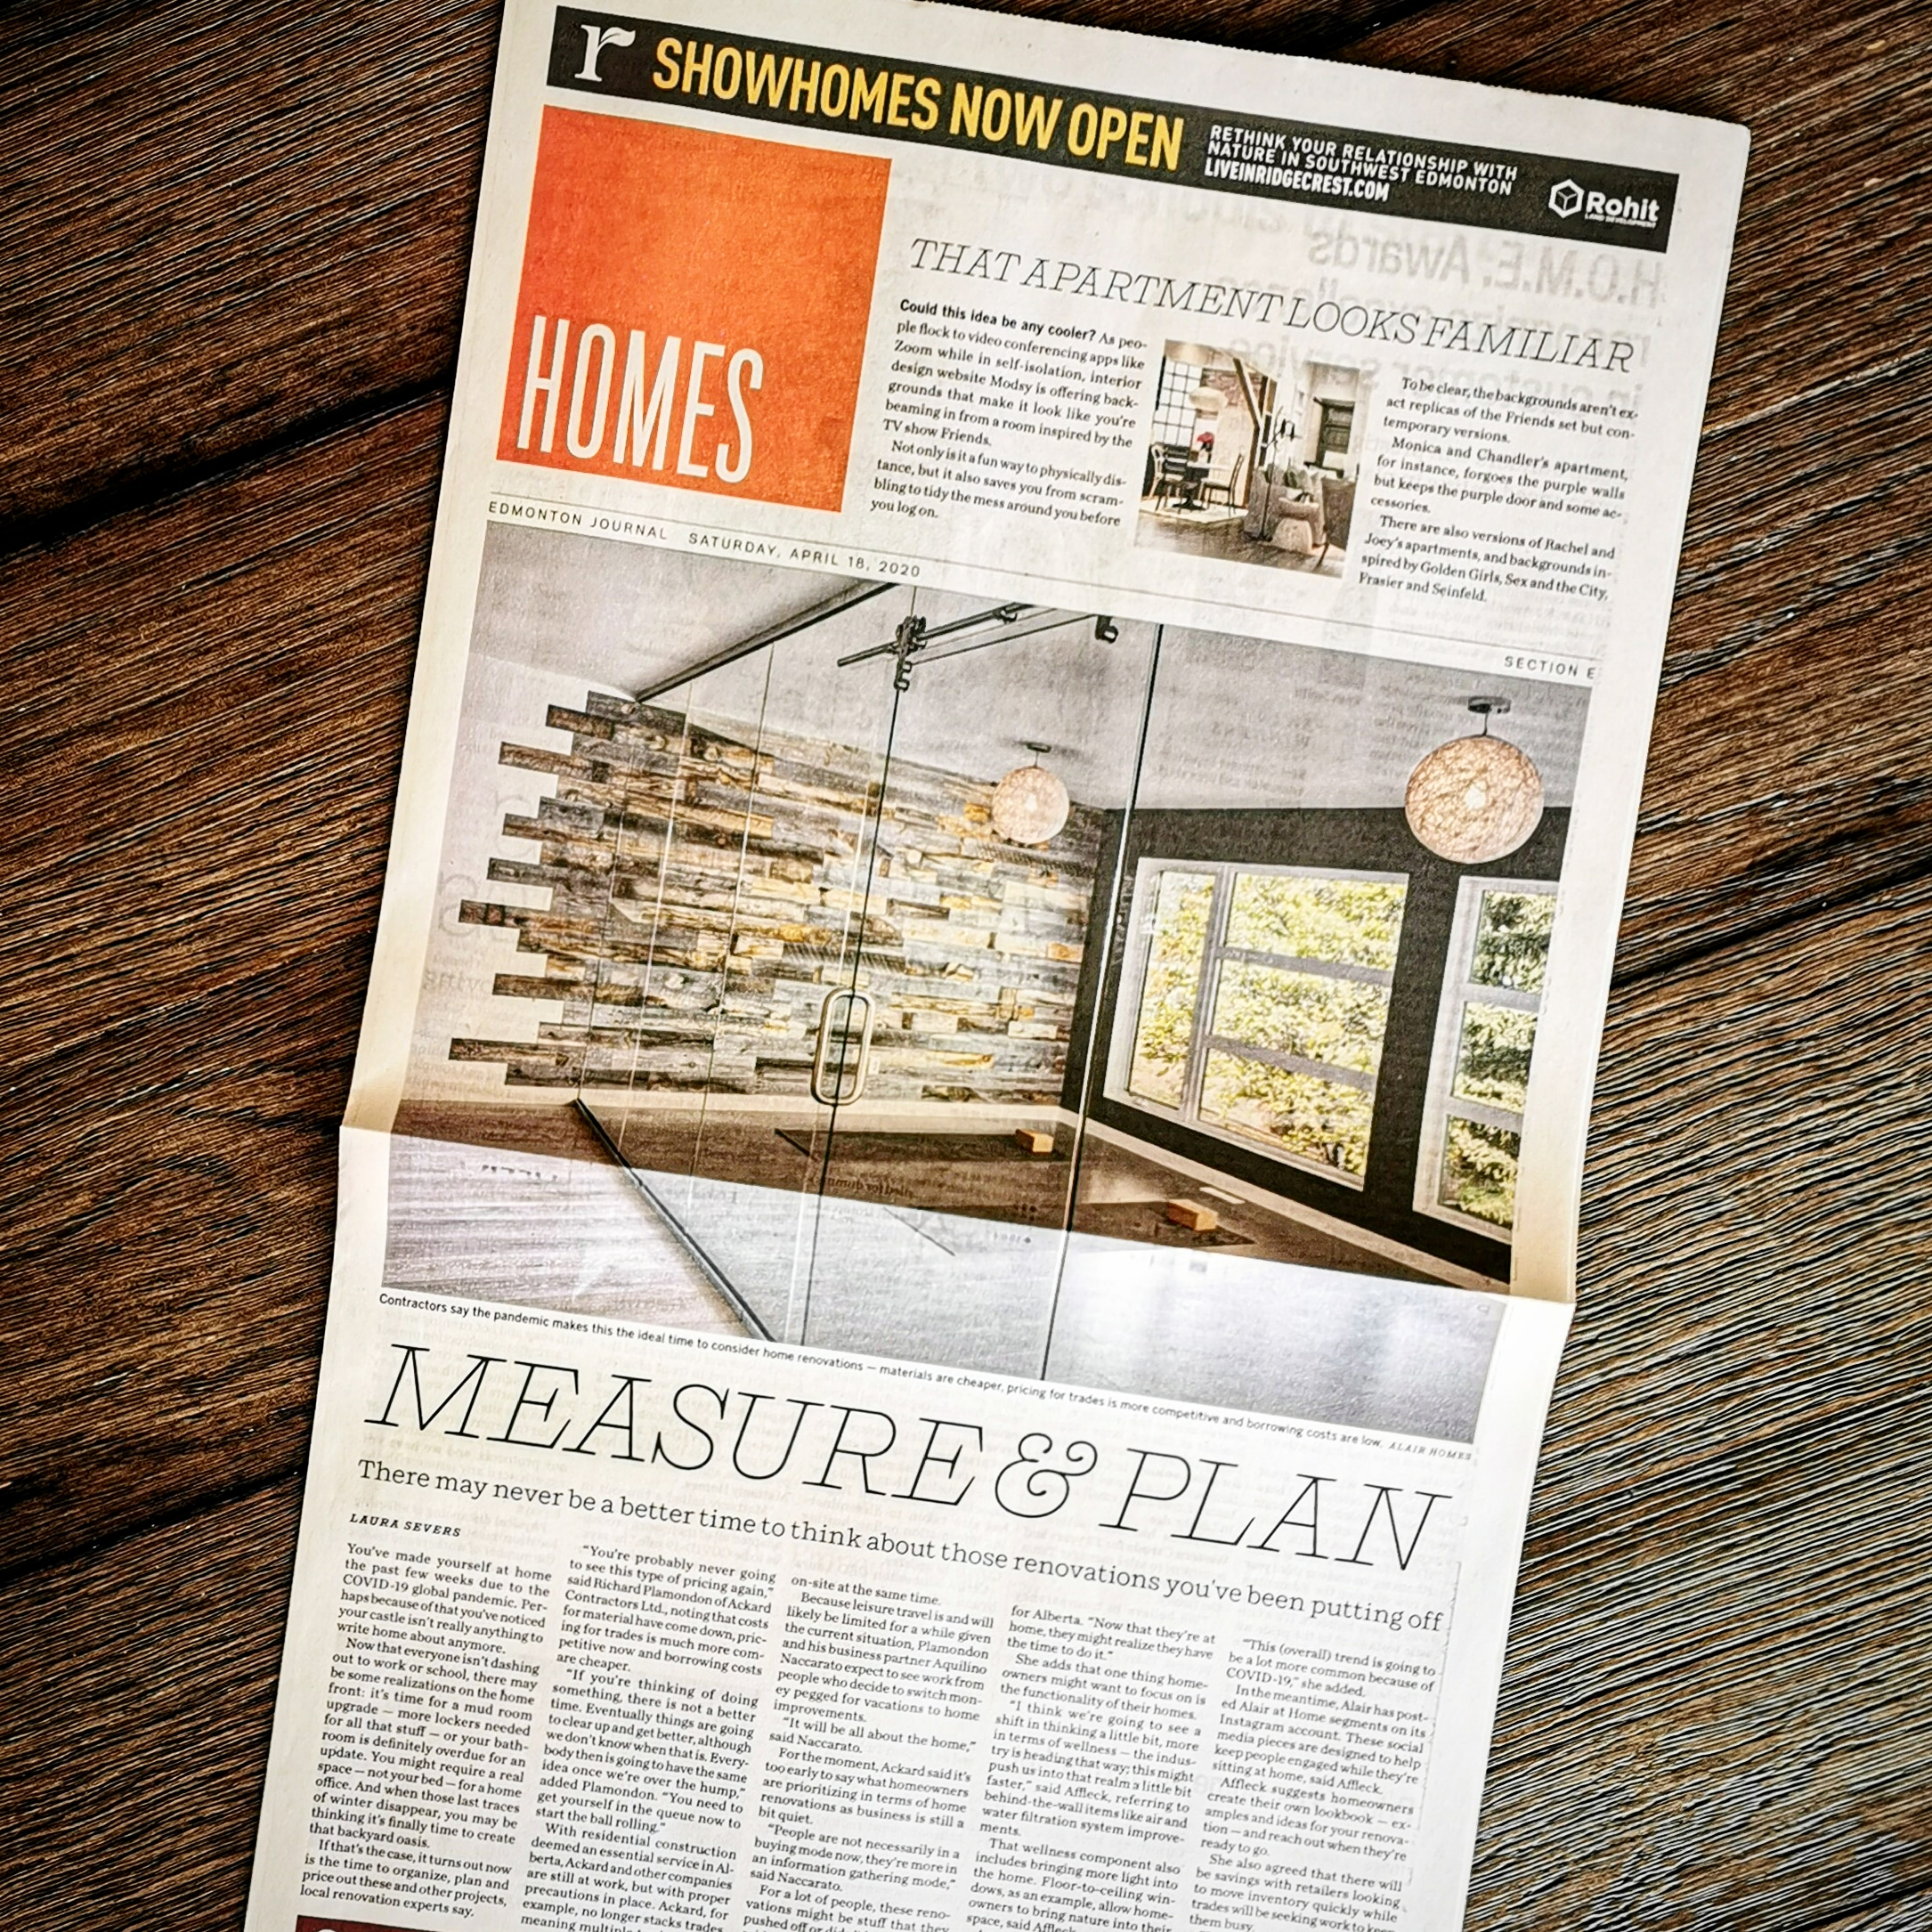 Alair in the News: Time at Home Inspires Renovations